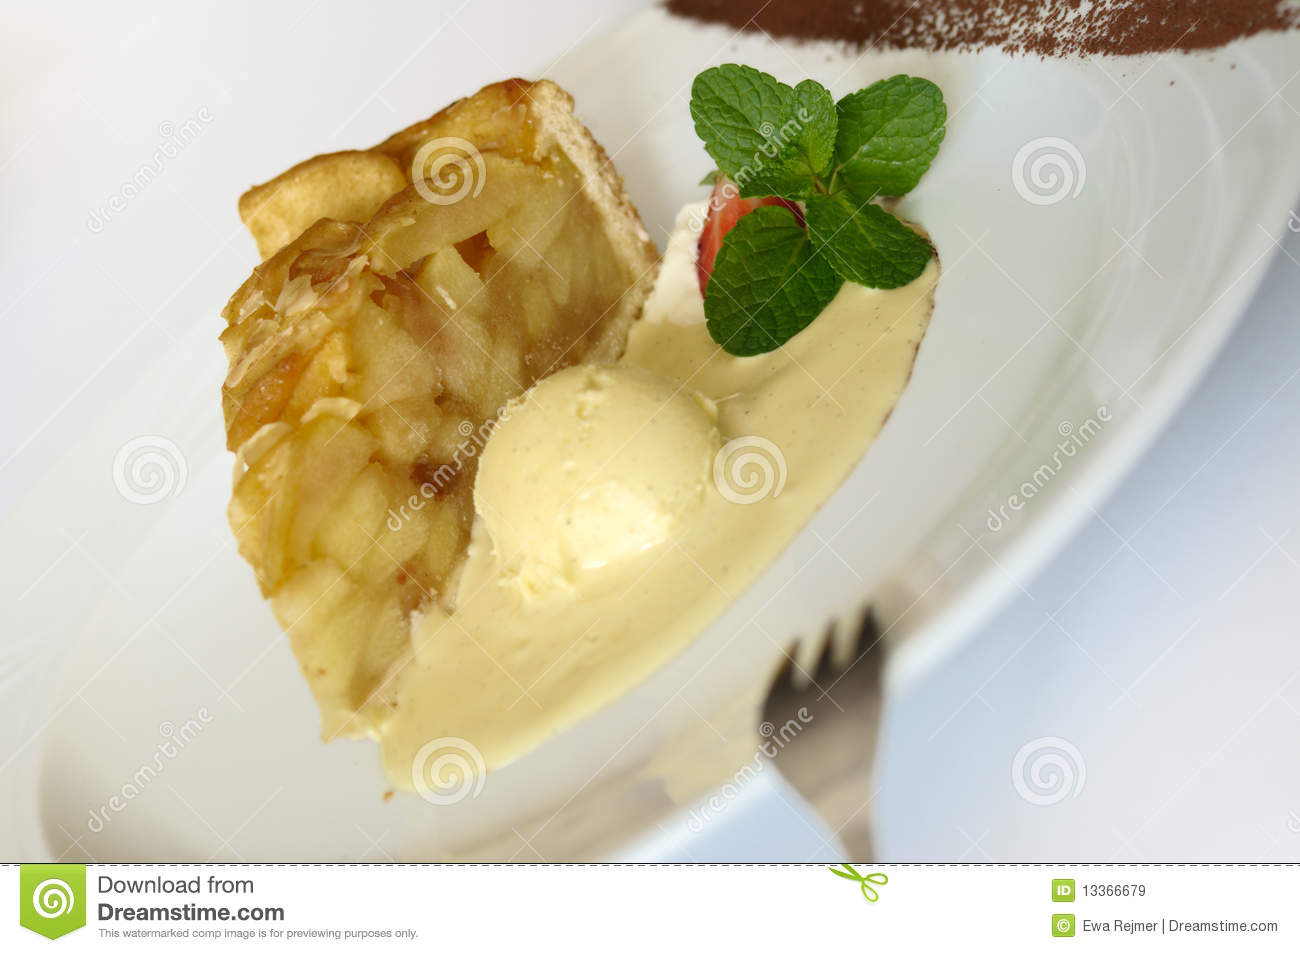 Traditional polish apple pie Szarlotka served hot with ice cream.